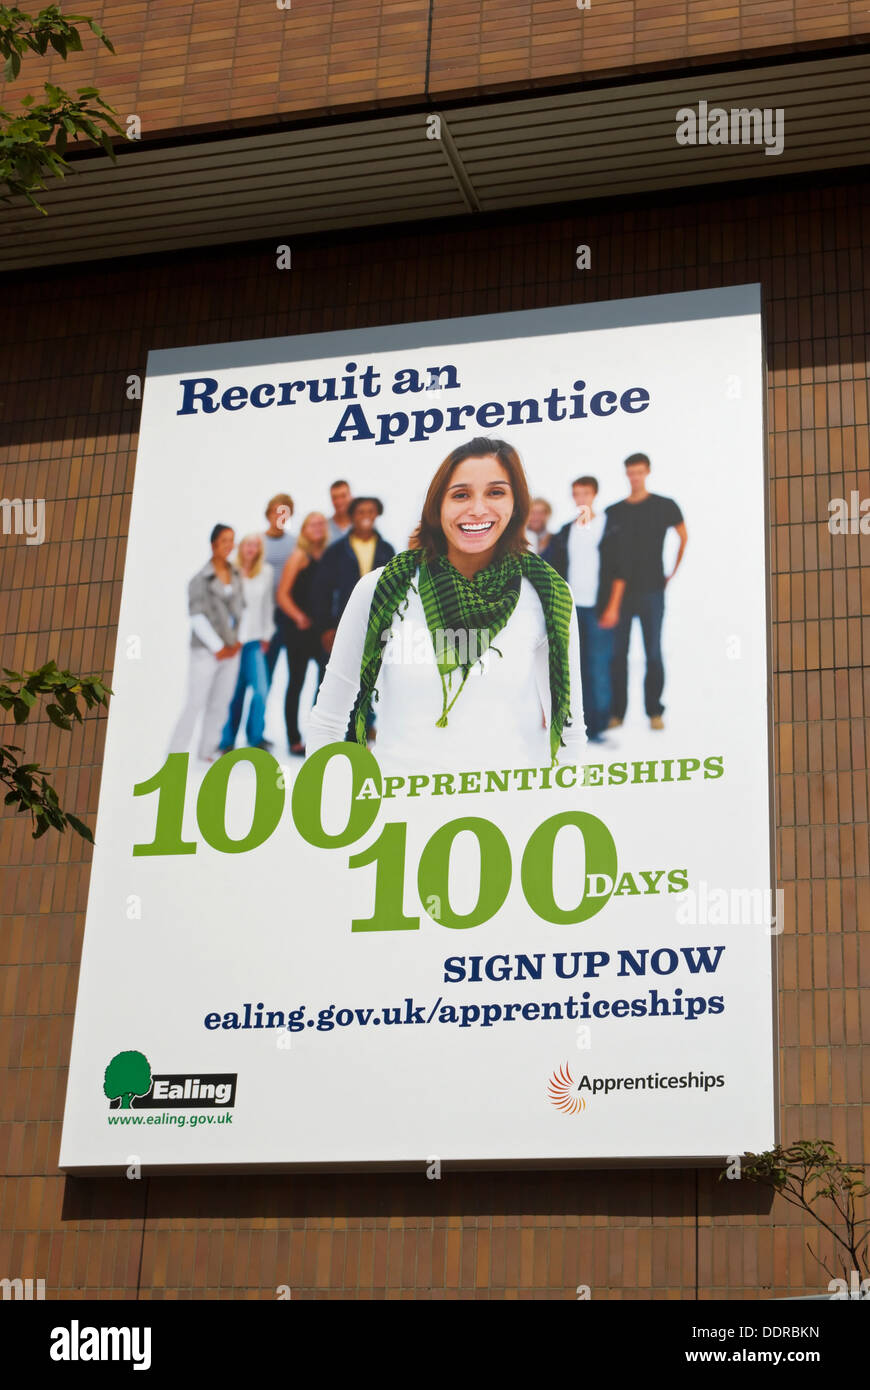 recruit an apprentice poster at the offices of ealing council, london, england - Stock Image